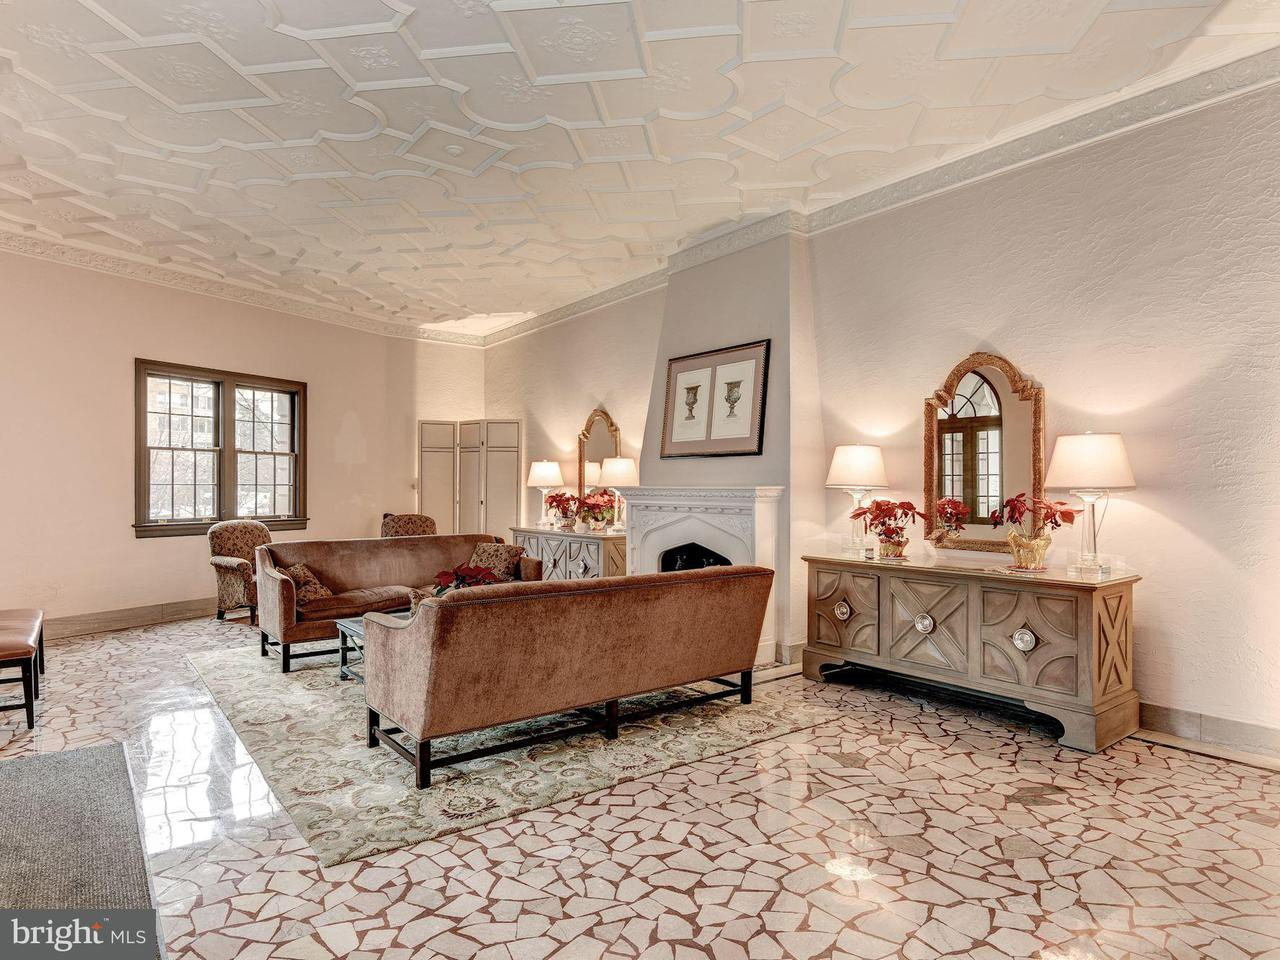 Additional photo for property listing at 4514 Connecticut Ave Nw #B 4514 Connecticut Ave Nw #B Washington, District Of Columbia 20008 United States